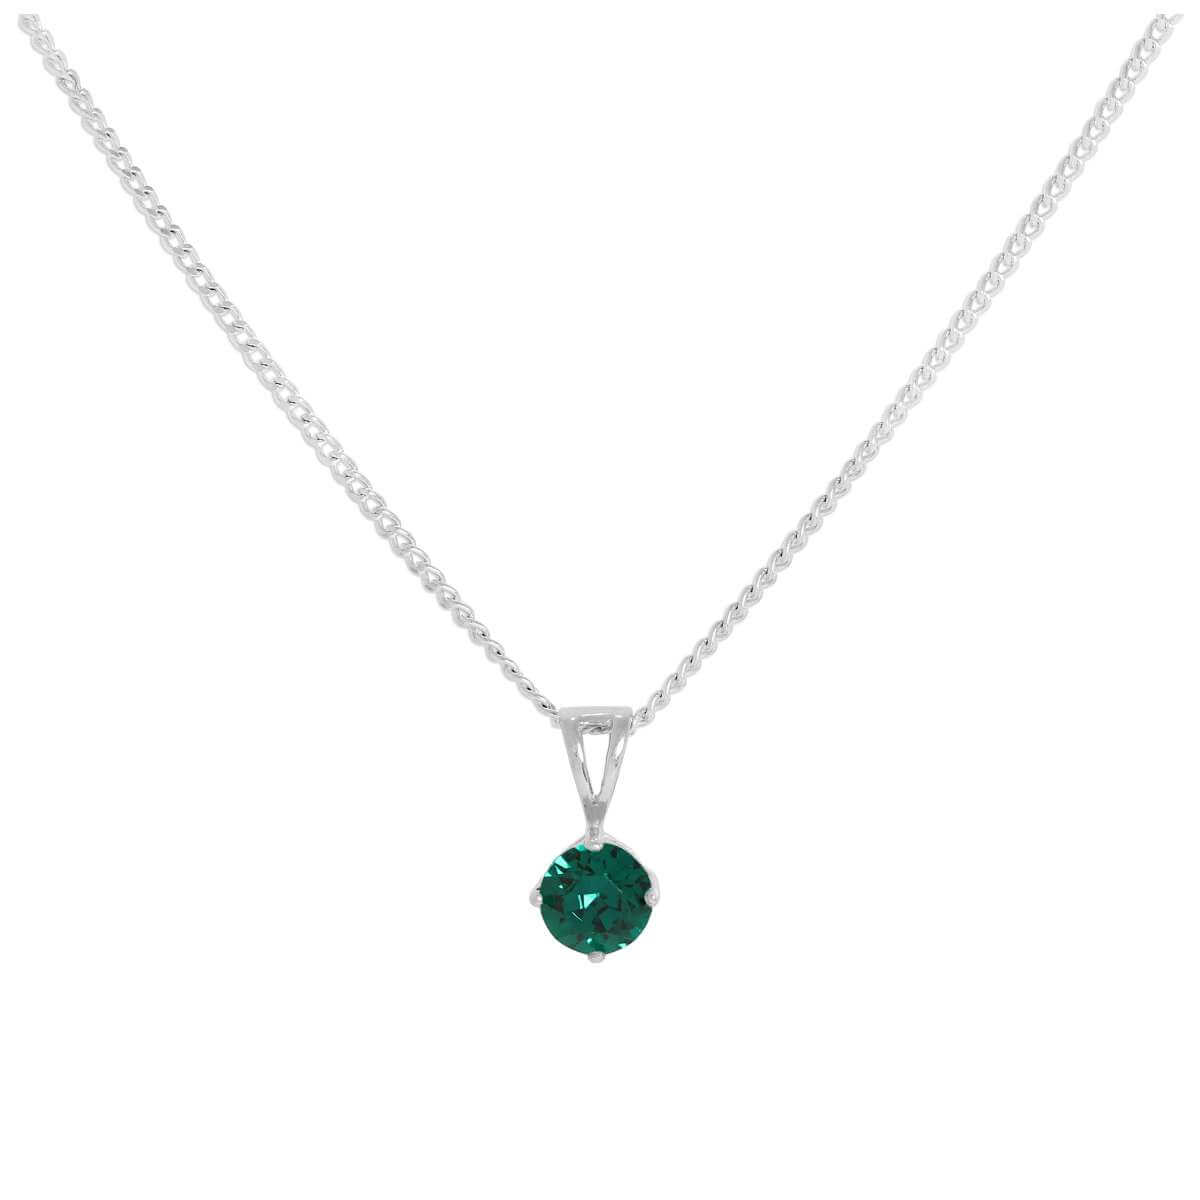 Sterling Silver & Emerald Crystal Made with Swarovski Elements May Birthstone Pendant Necklace 16 - 24 Inches